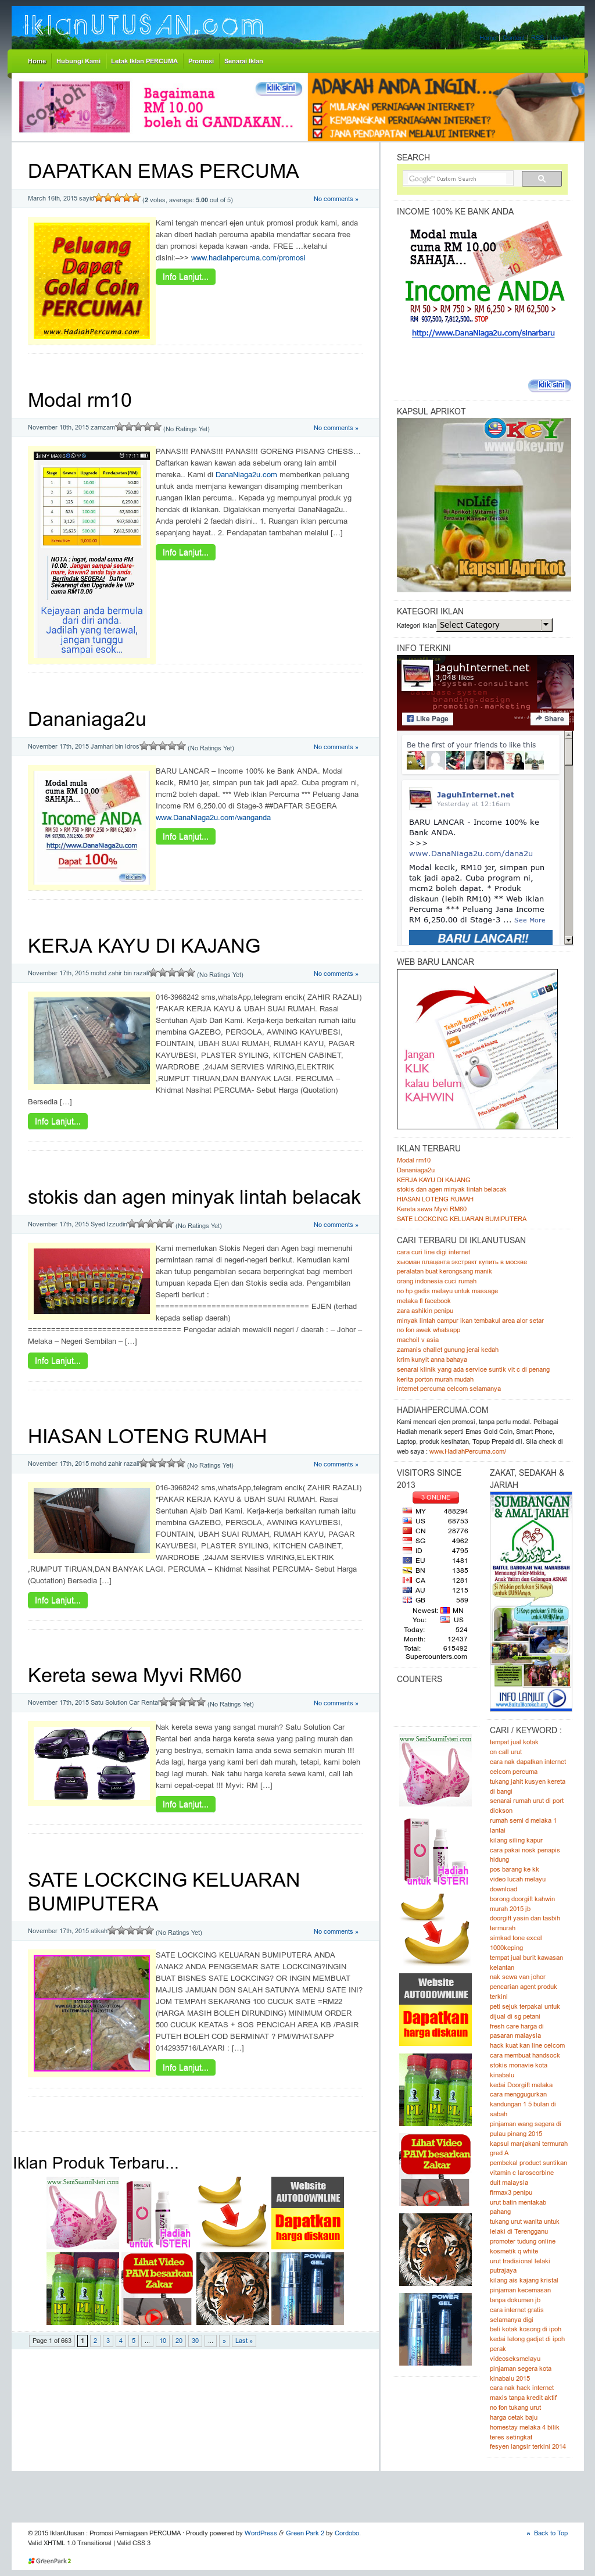 Remarkable Iklanutusan Competitors Revenue And Employees Owler Company Profile Wiring Digital Resources Indicompassionincorg